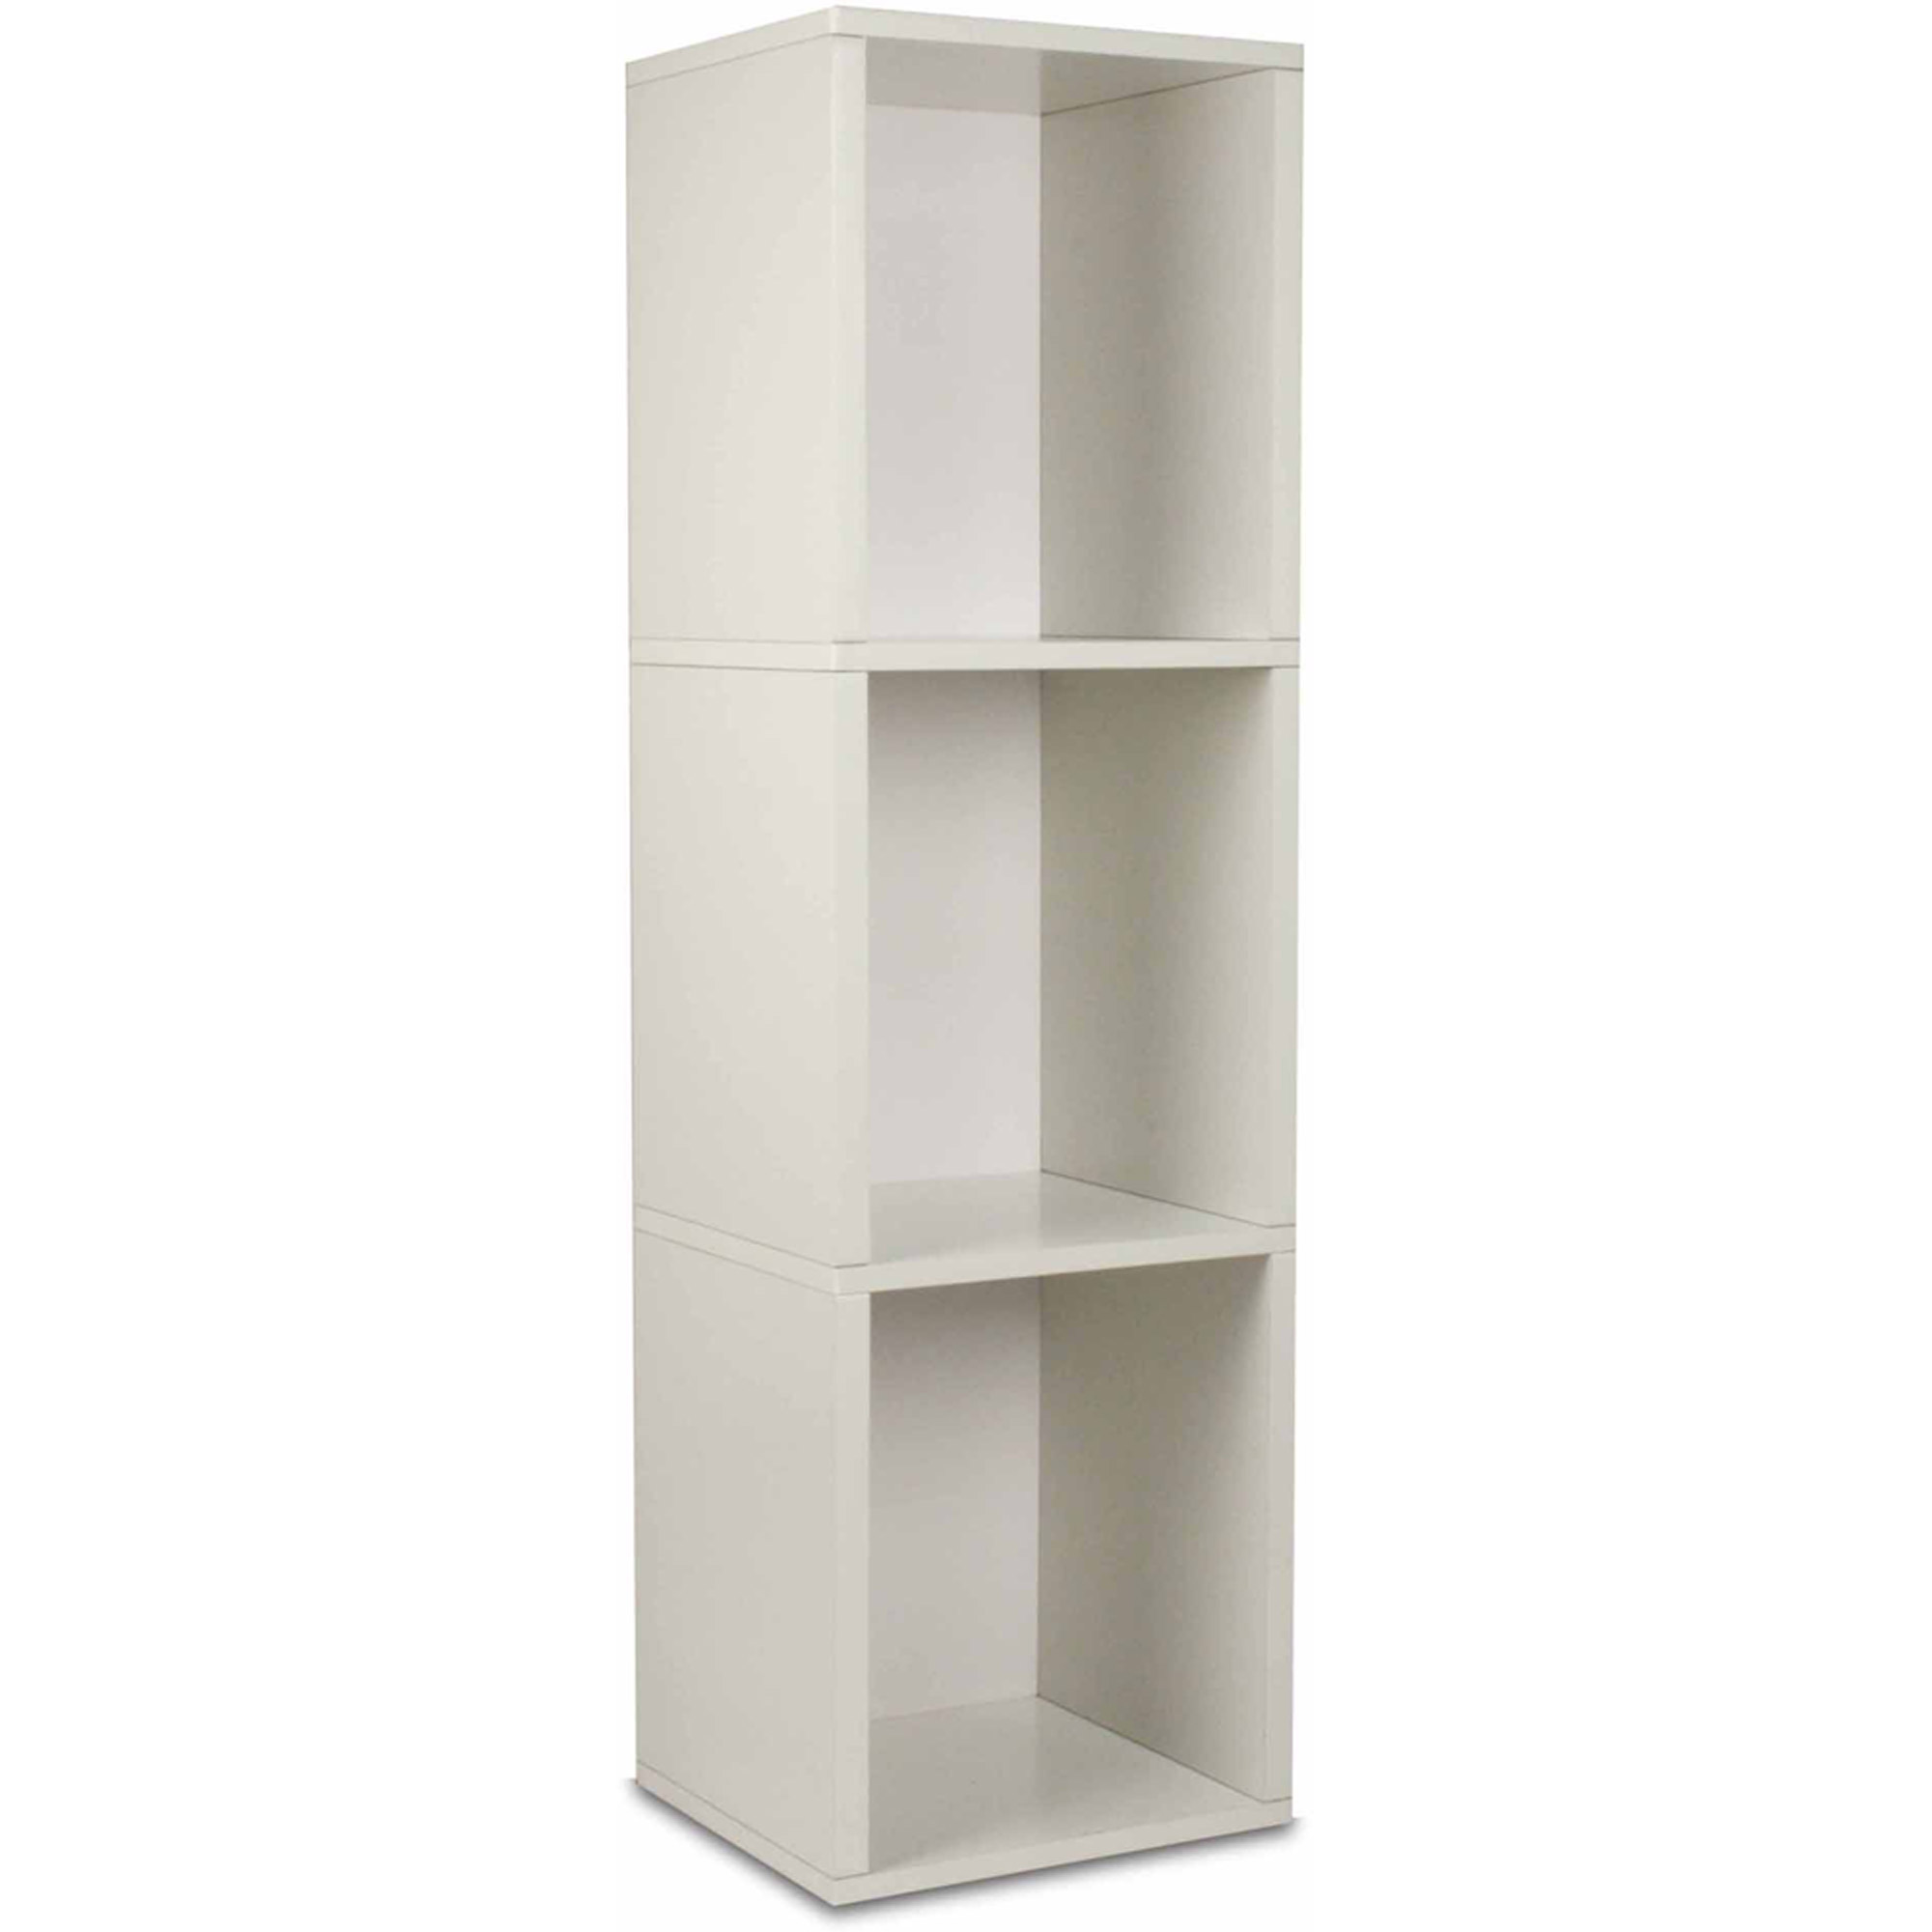 Way Basics Eco 3 Shelf Triple Cube Plus Narrow Bookcase And Storage Shelf,  White